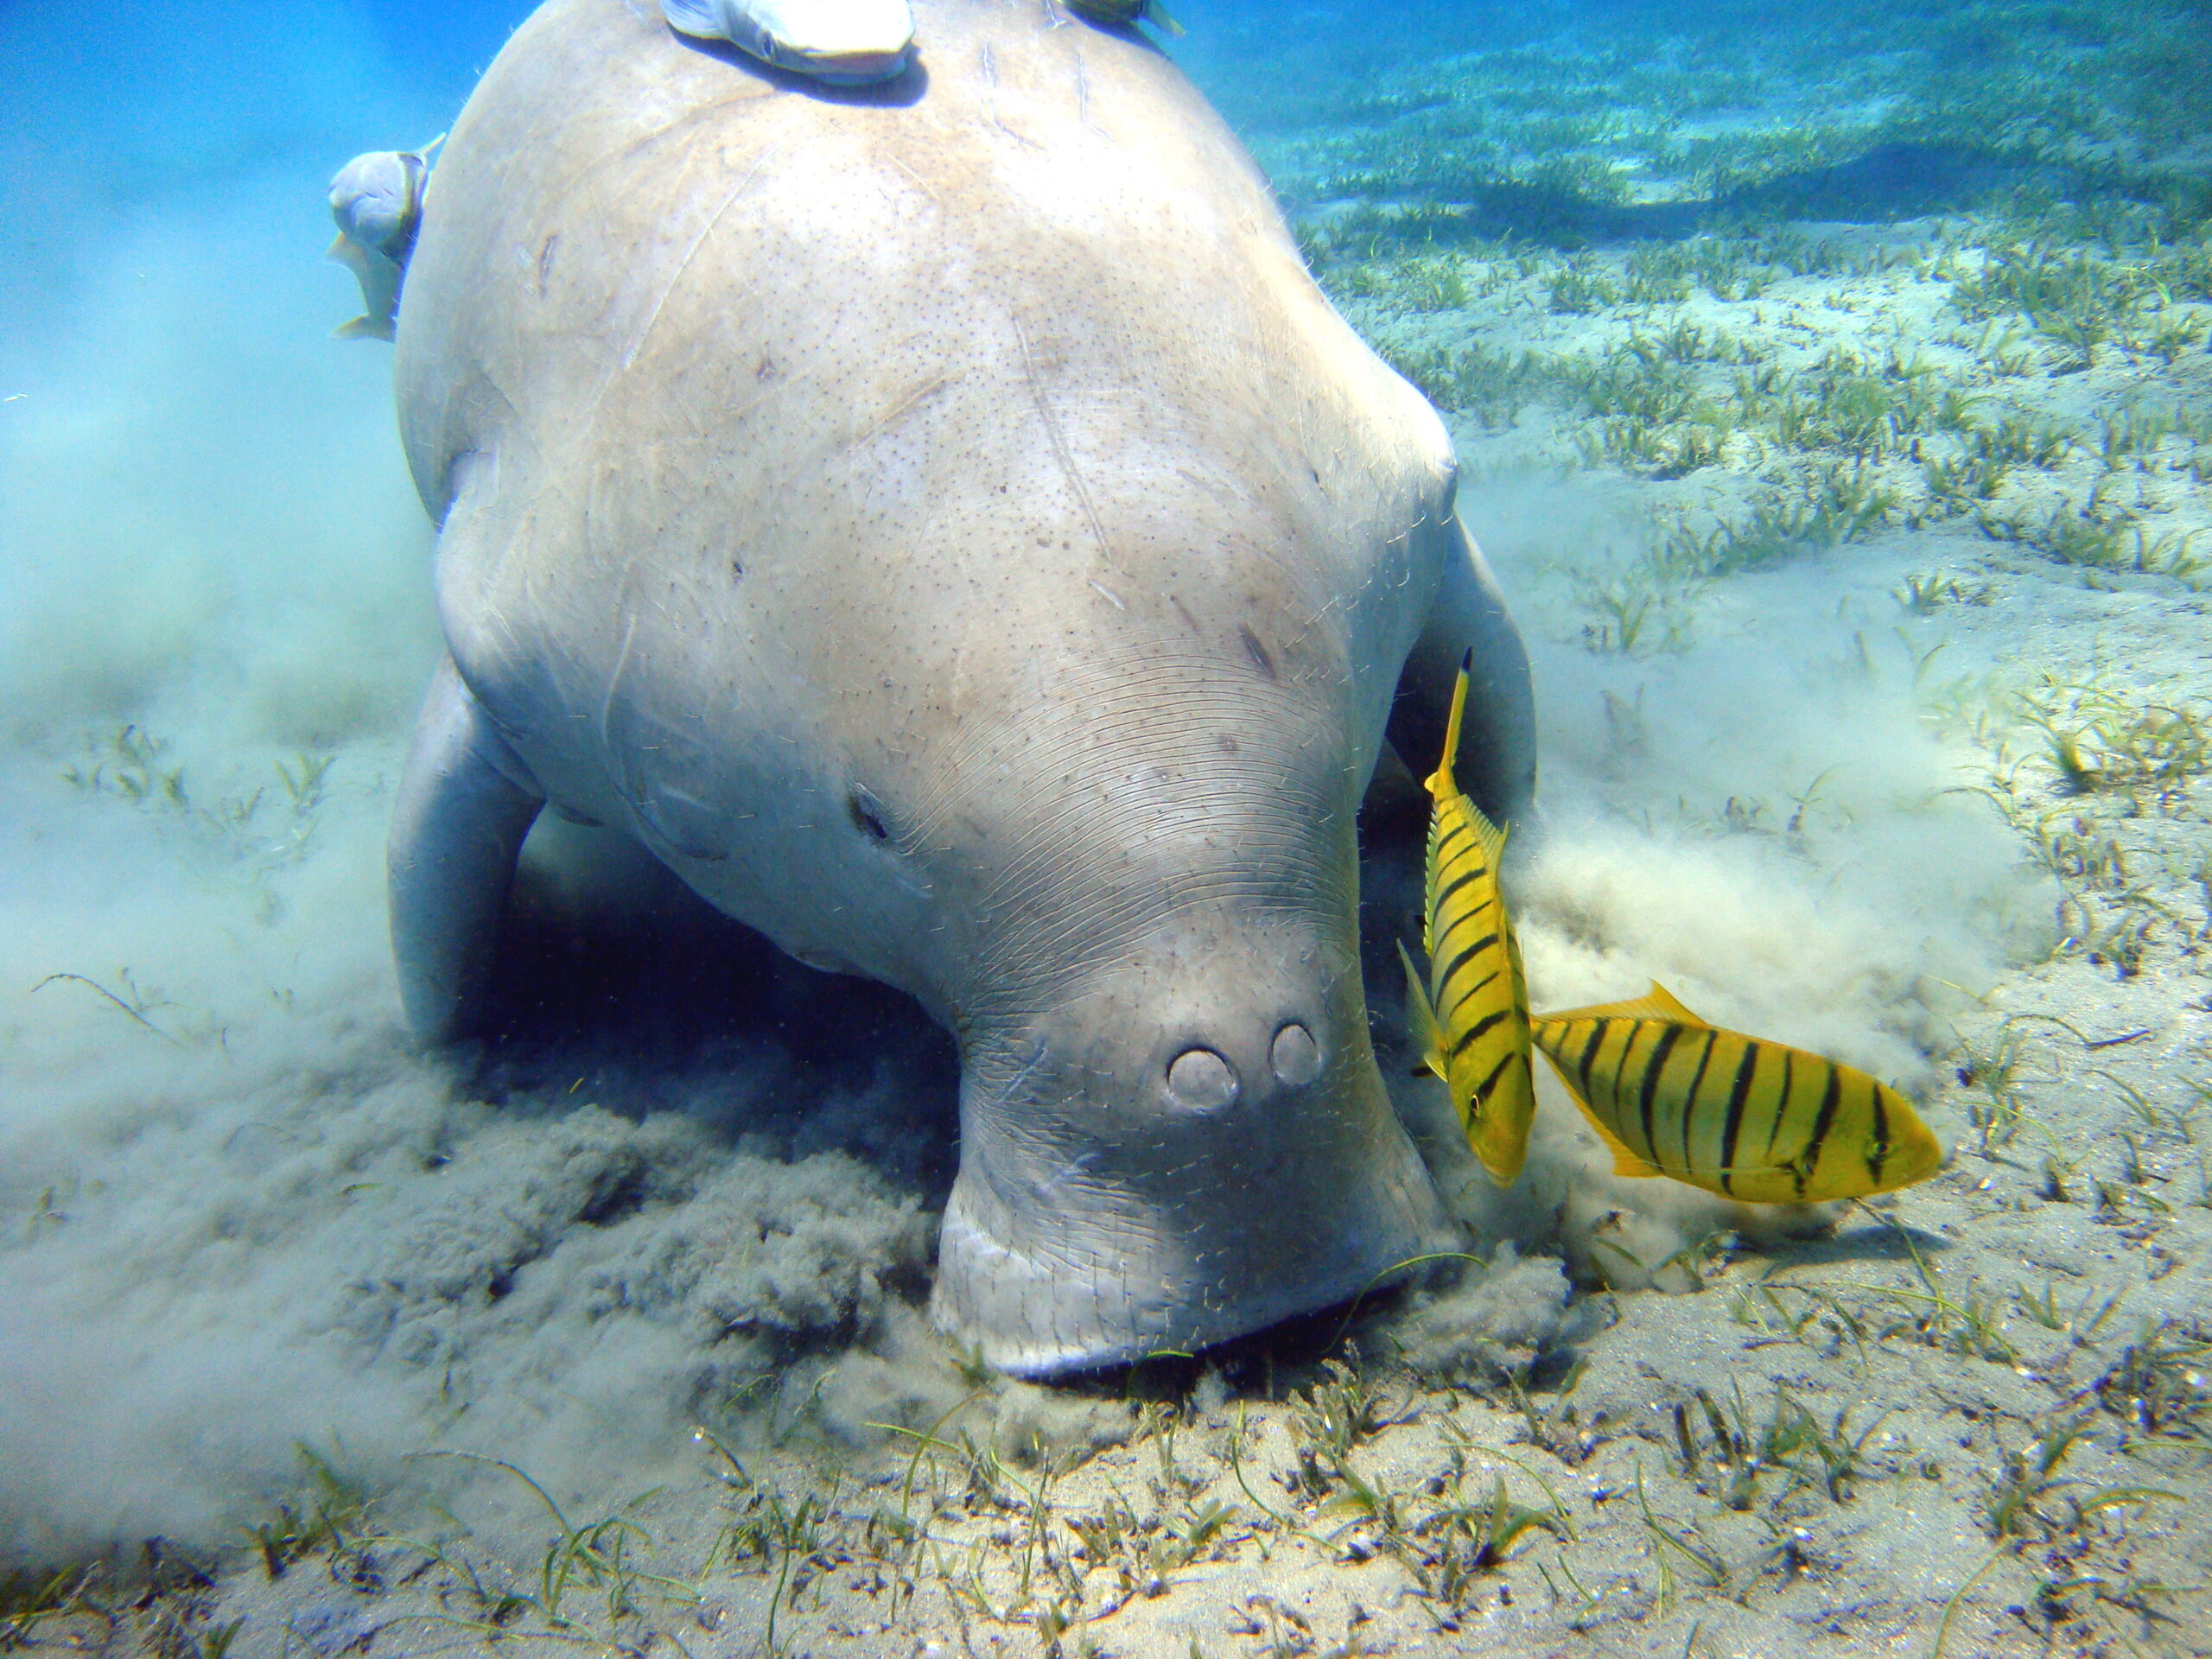 As U.S. Airbase Construction Starts in Okinawa, Legal Action Aims to Save Endangered Dugongs